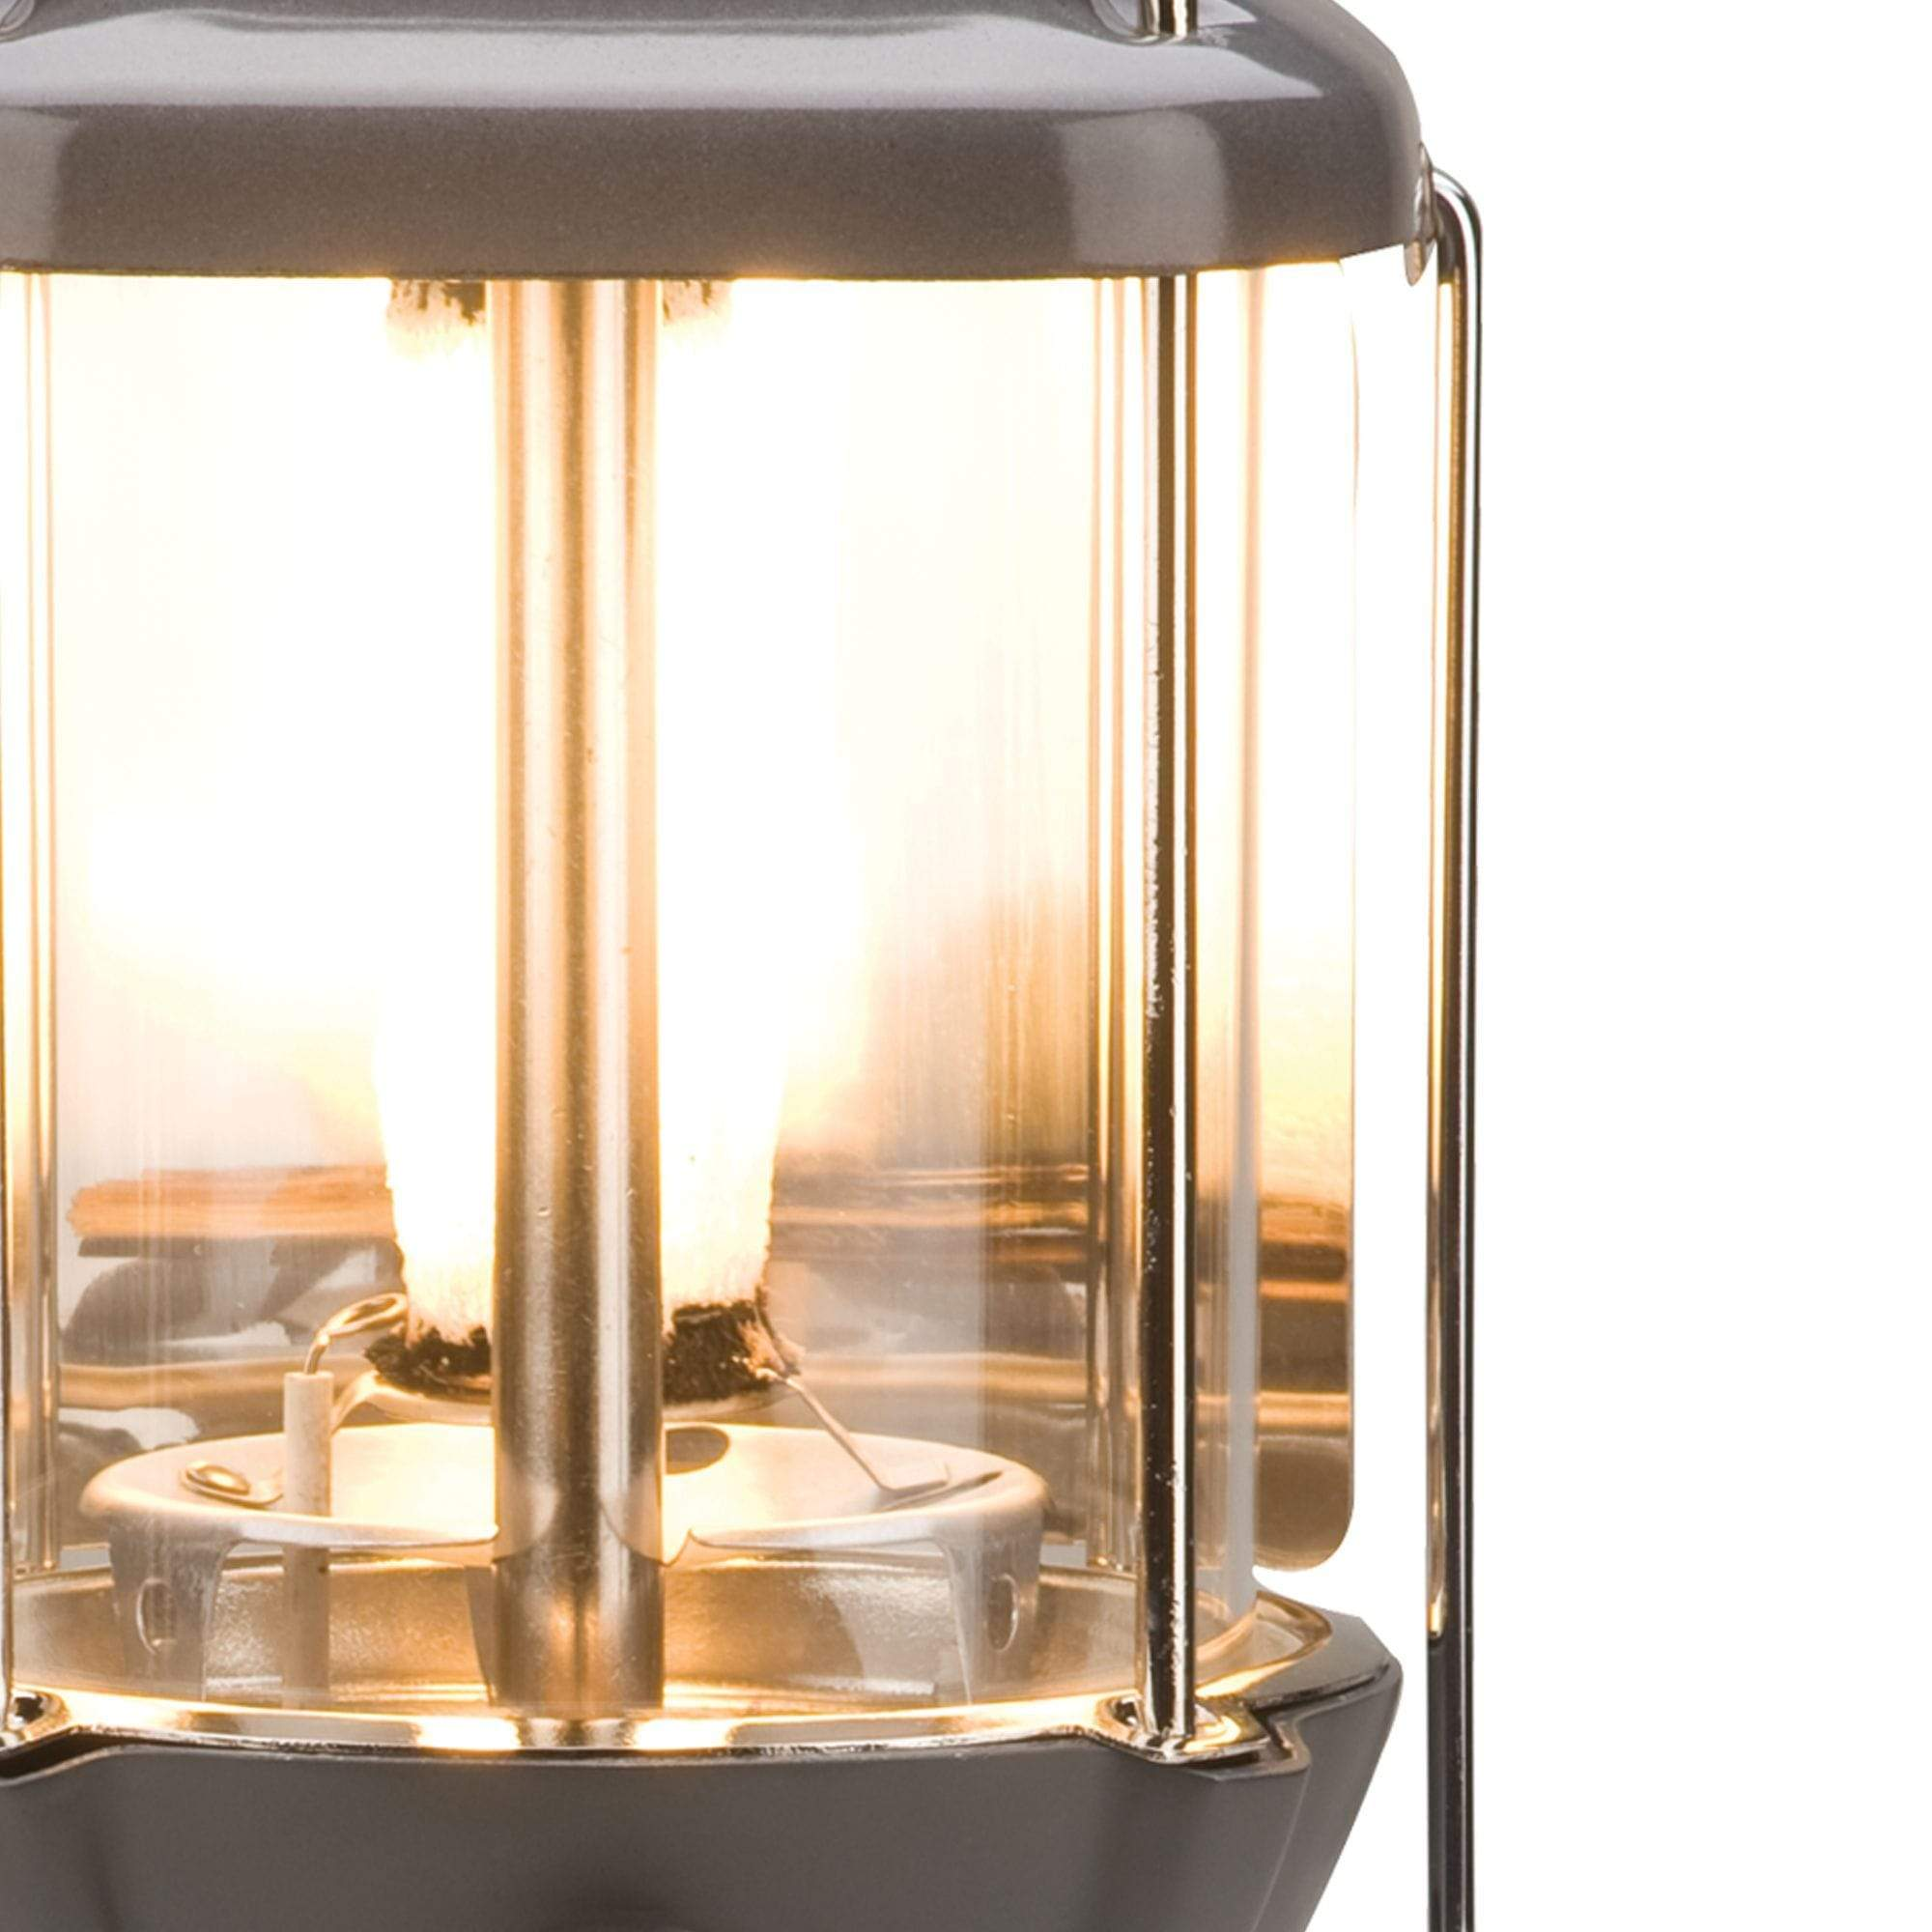 Coleman Northstar® Elite Propane Lantern – Today's Outdoors